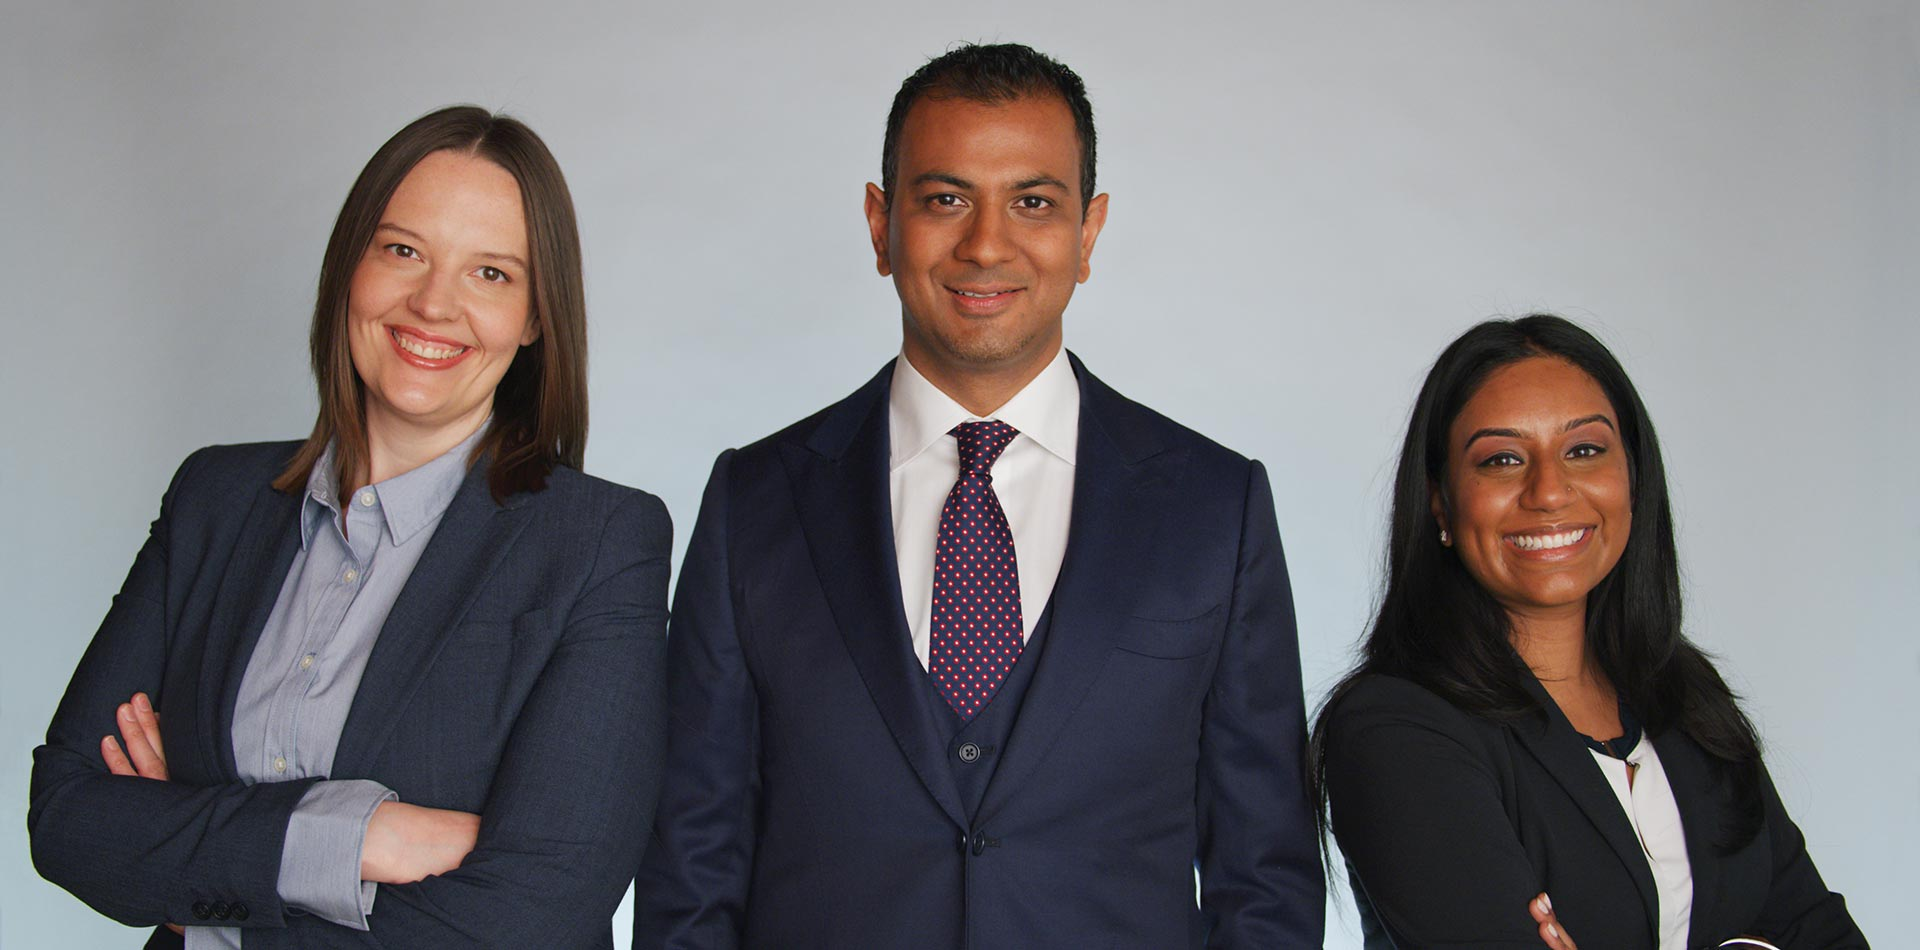 Stephanie, Dorian, and Meera of Persaud Employment Law